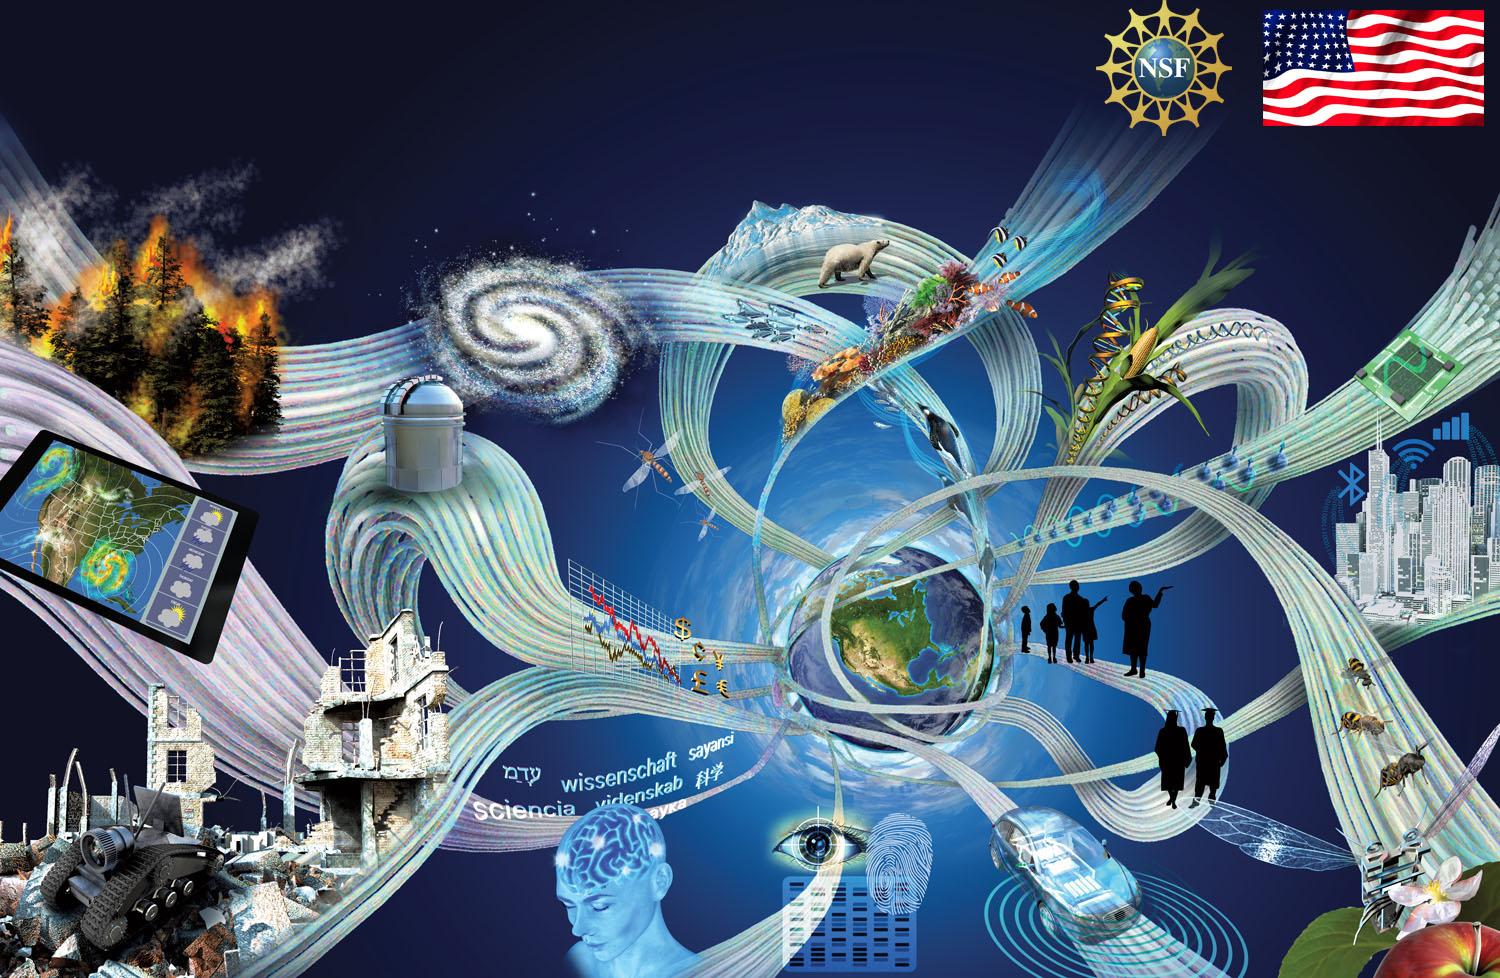 Transforming the World Through Science. National Science Foundation